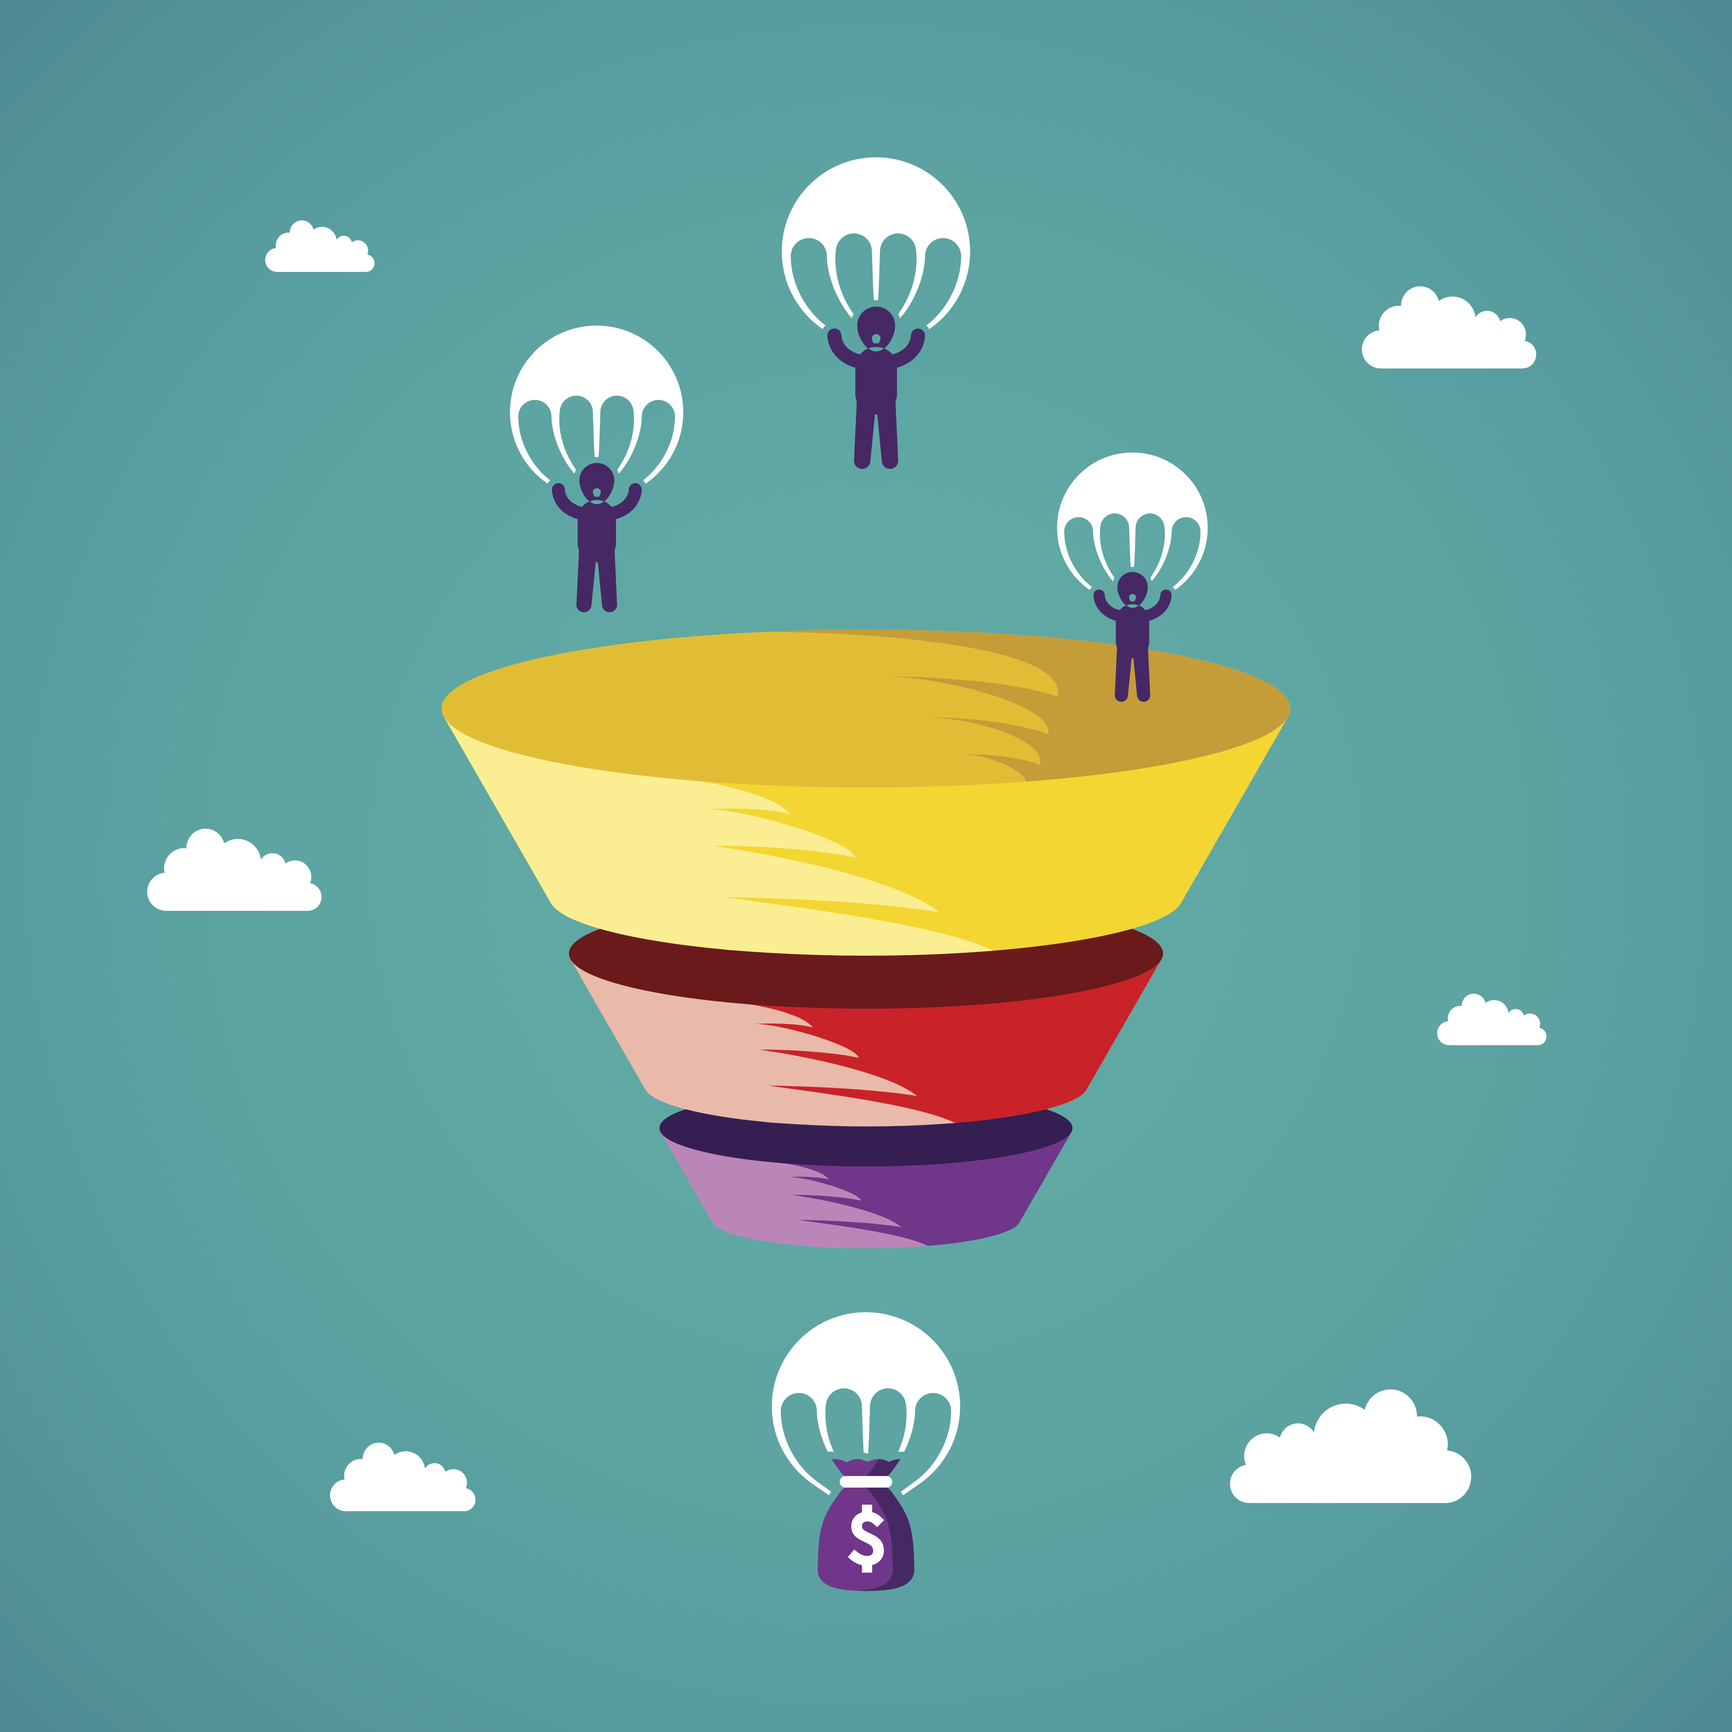 1732x1732 Sales Funnel Vector Concept In Flat Style Growth Marketing